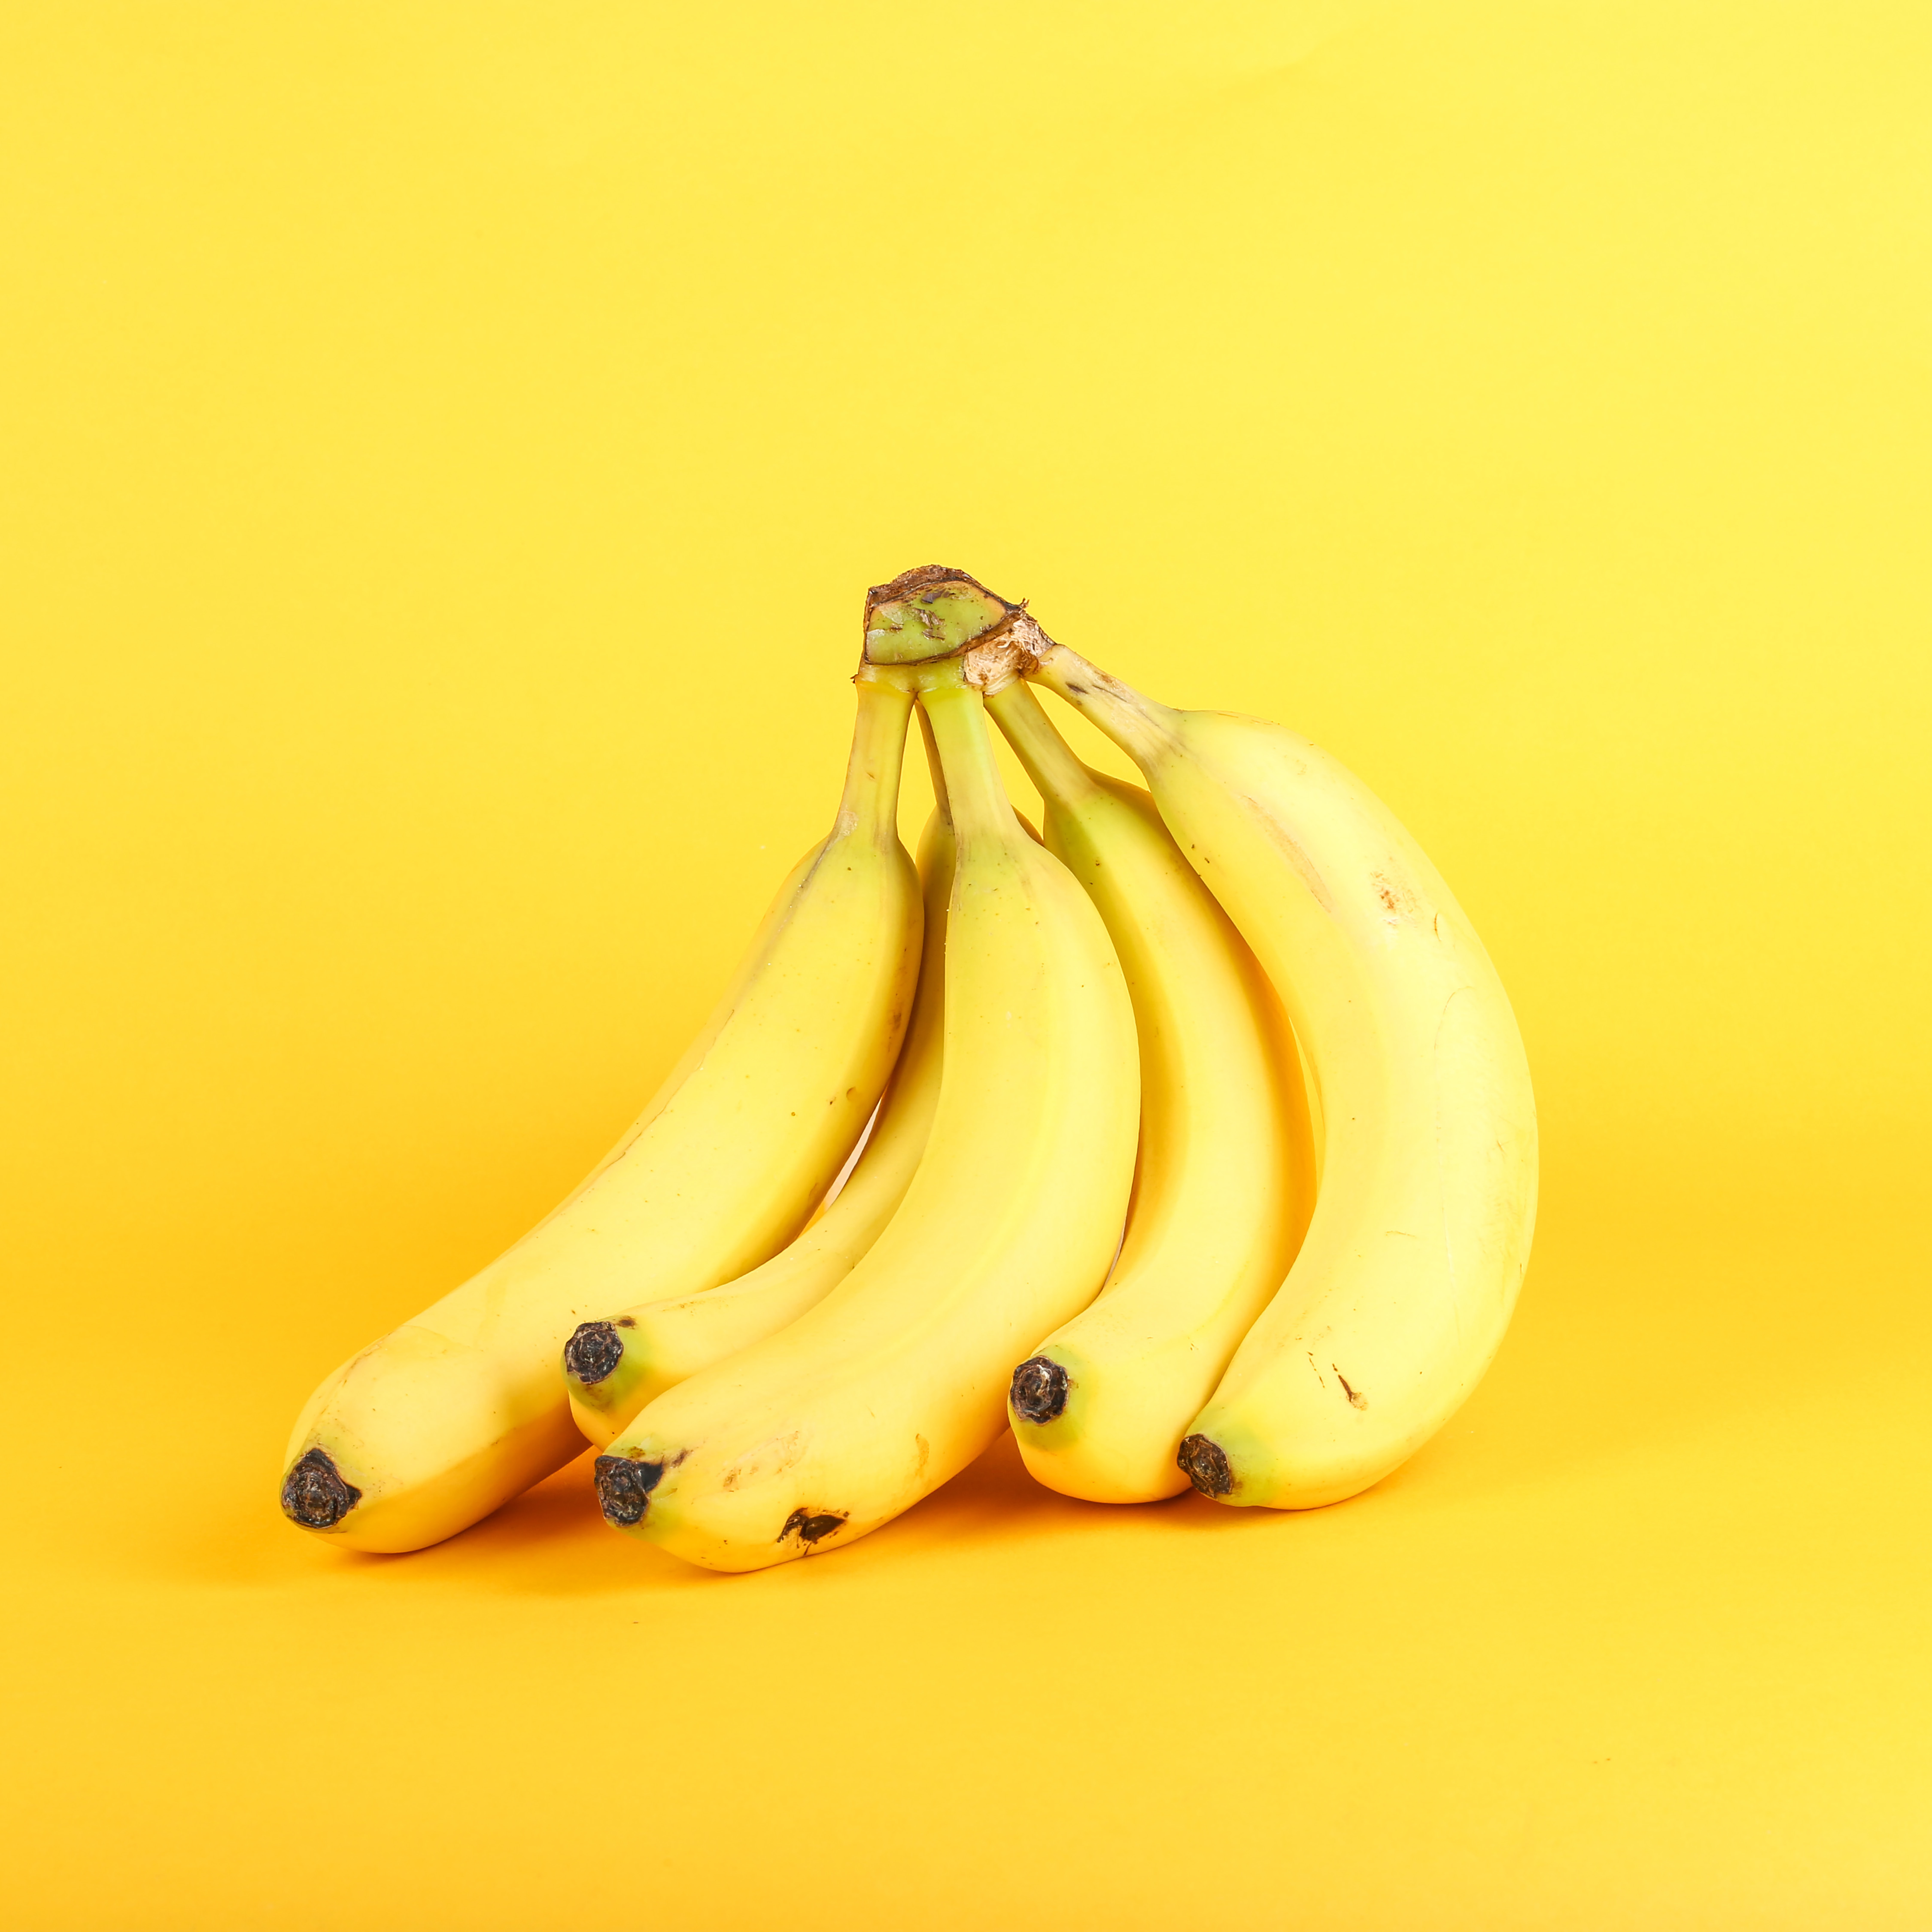 Banana Image by Giorgio Trovato - donate $5 to the Lancaster County Food Hub to feed our community!